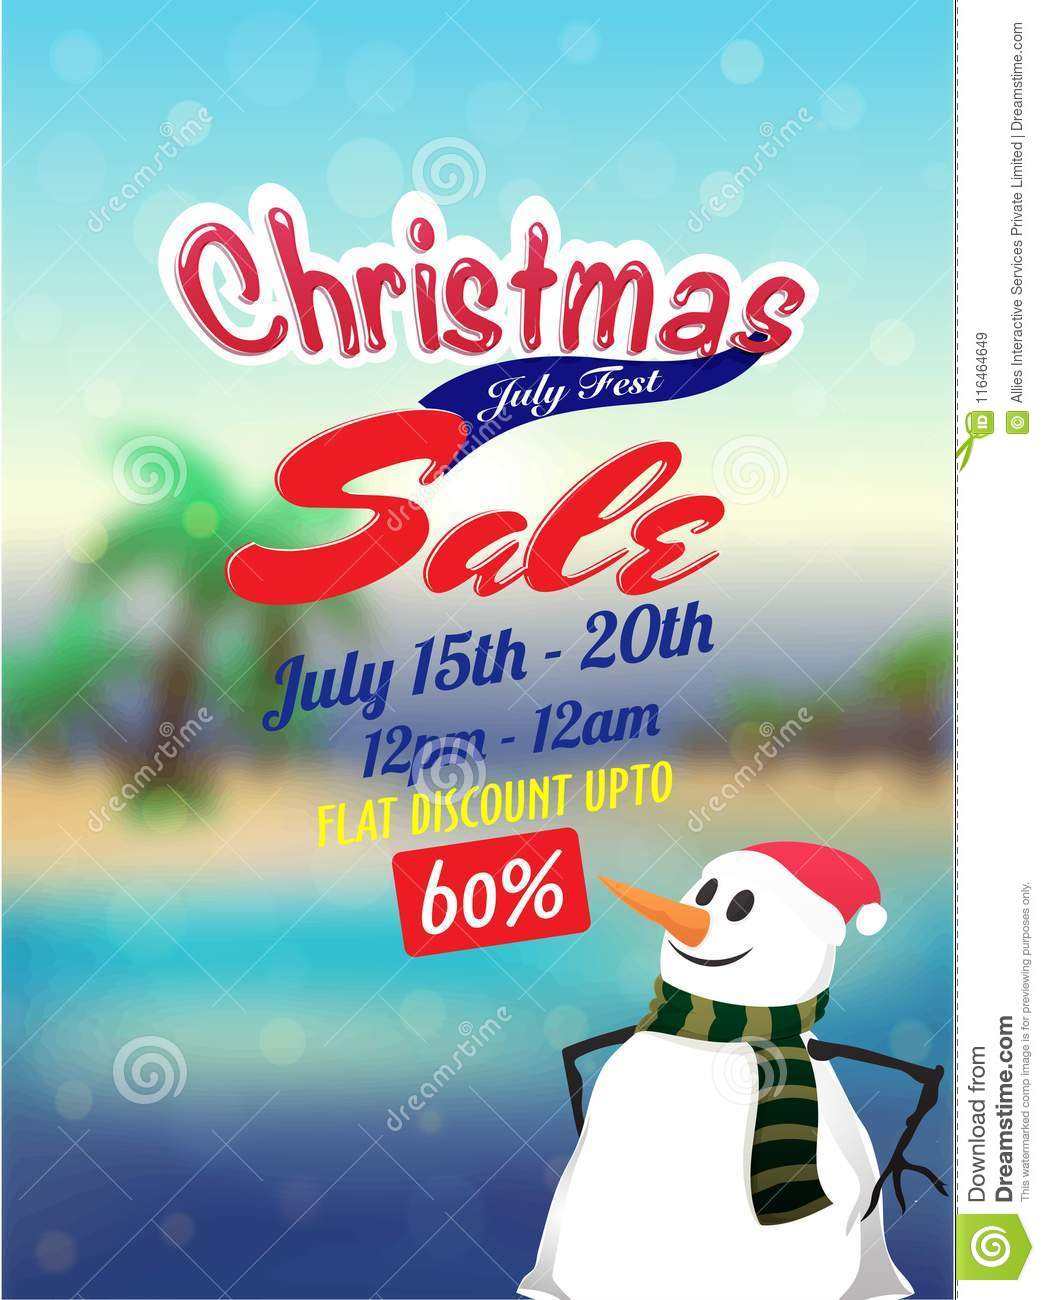 Christmas Sale In July Poster Banner Or Flyer Design With Snow